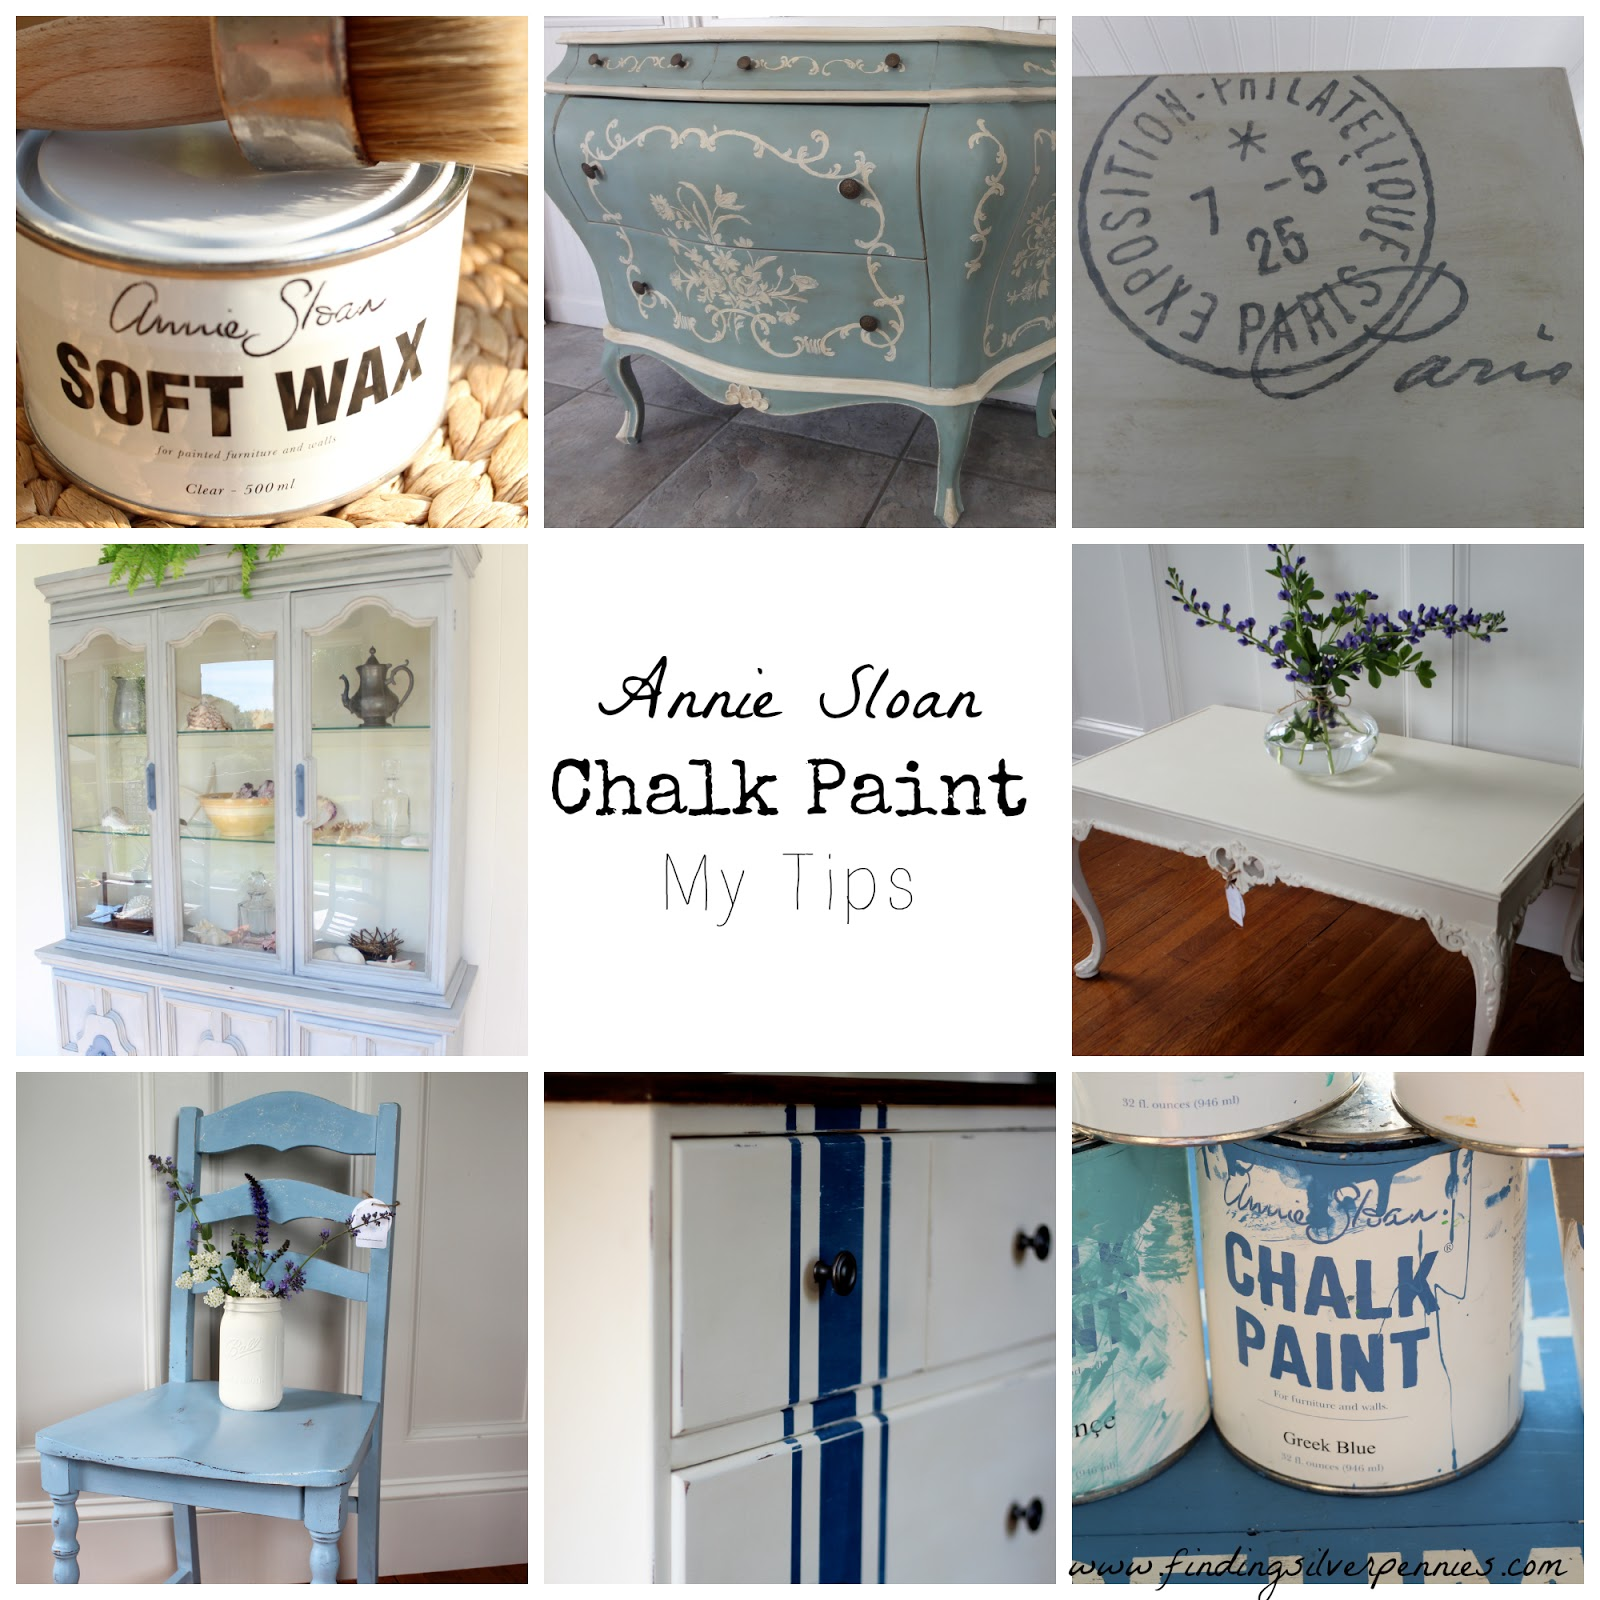 Annie Sloan Chalk Paint - My Tips - Finding Silver Pennies